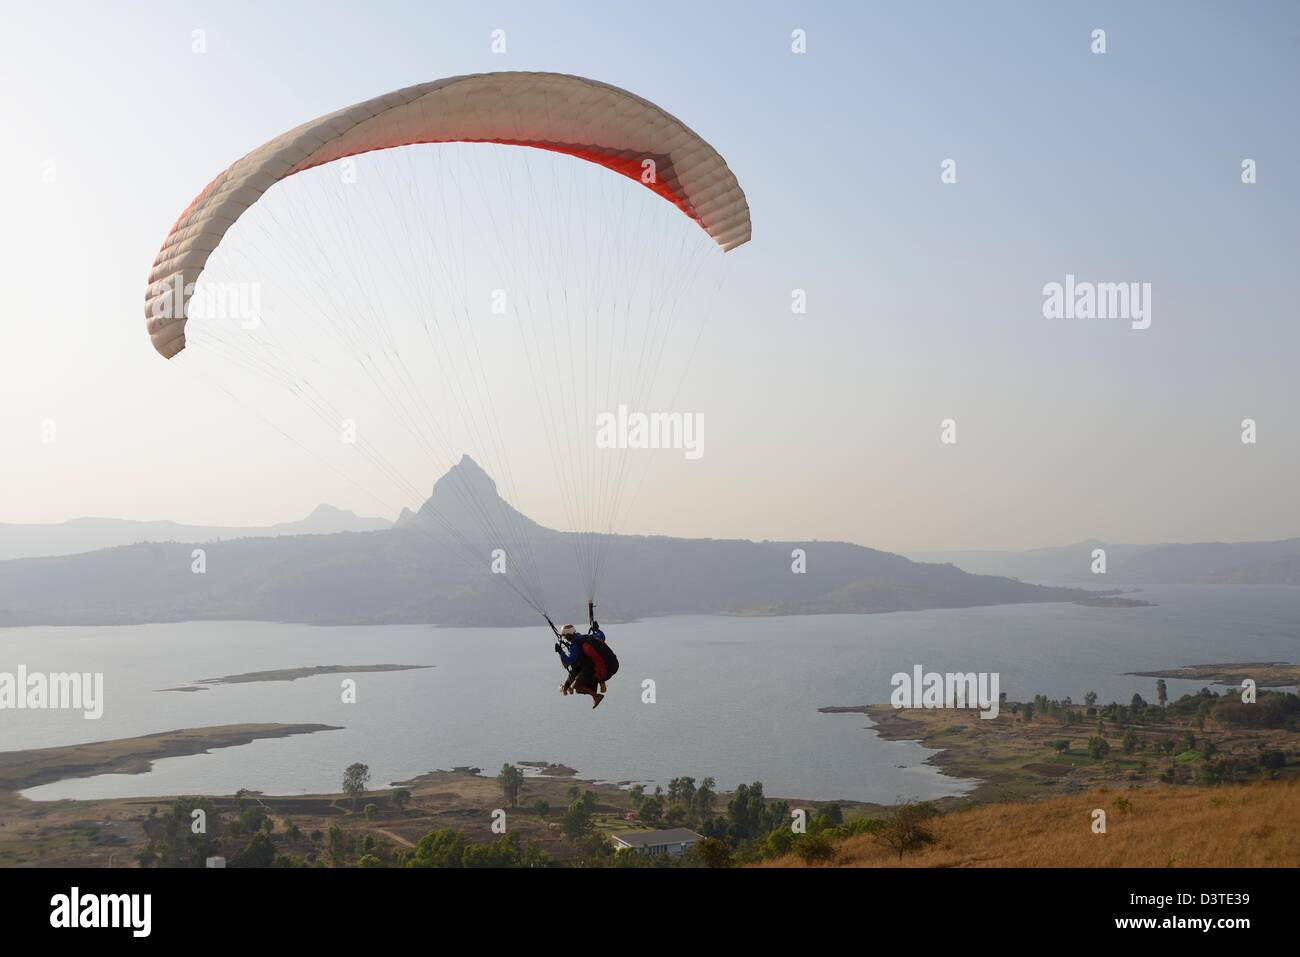 Paragliding - Stock Image